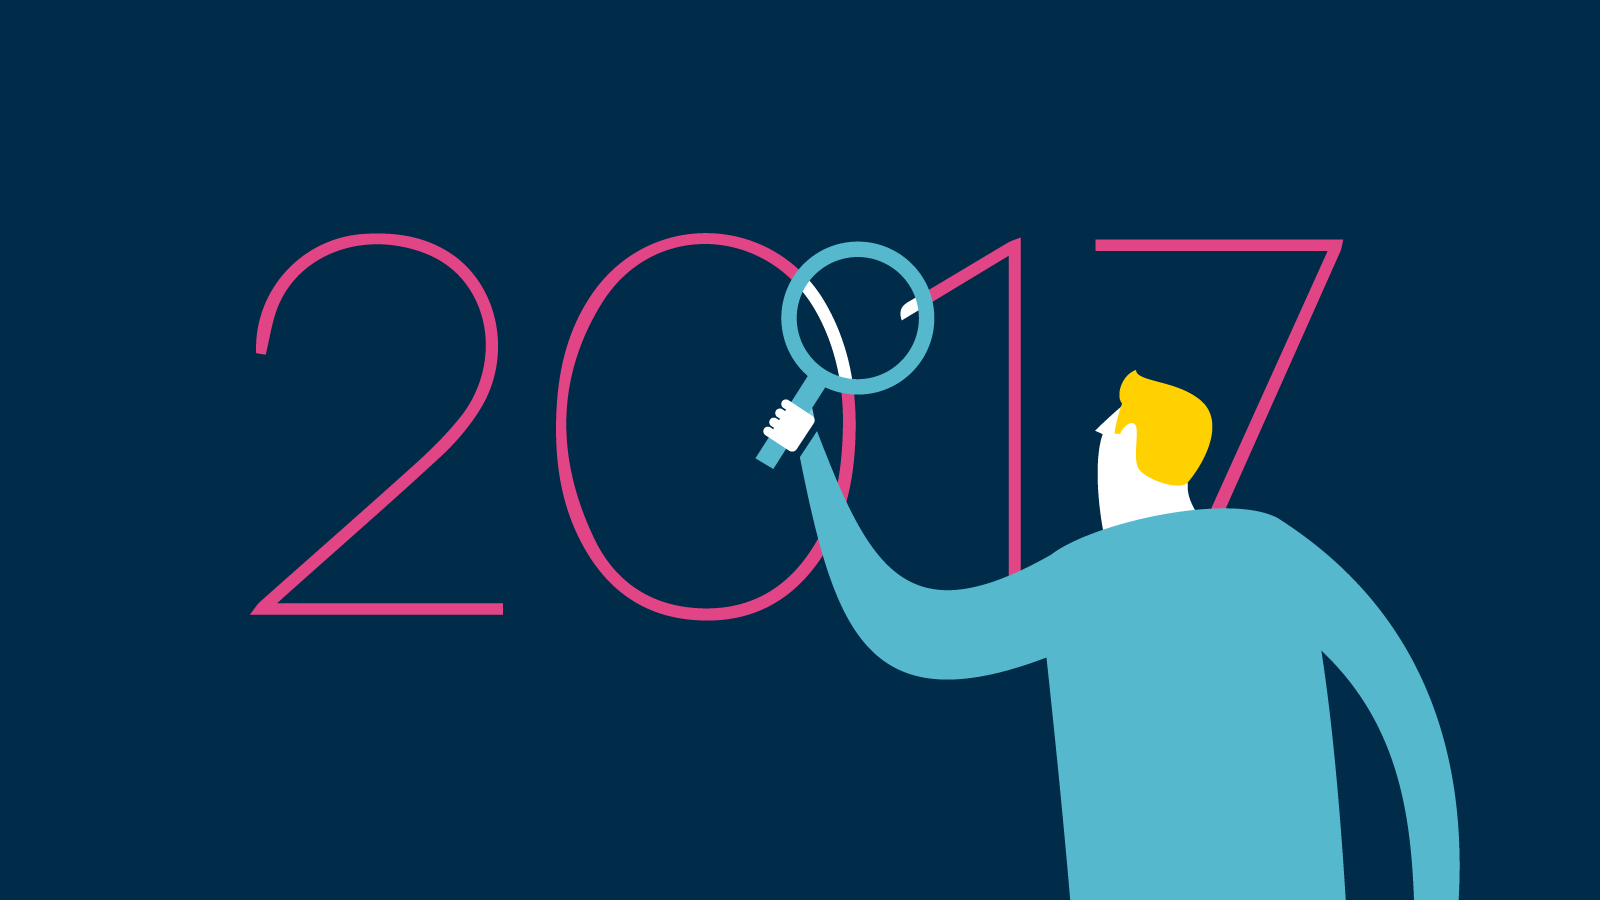 Illustration of man looking at 2017 through magnifying glass.